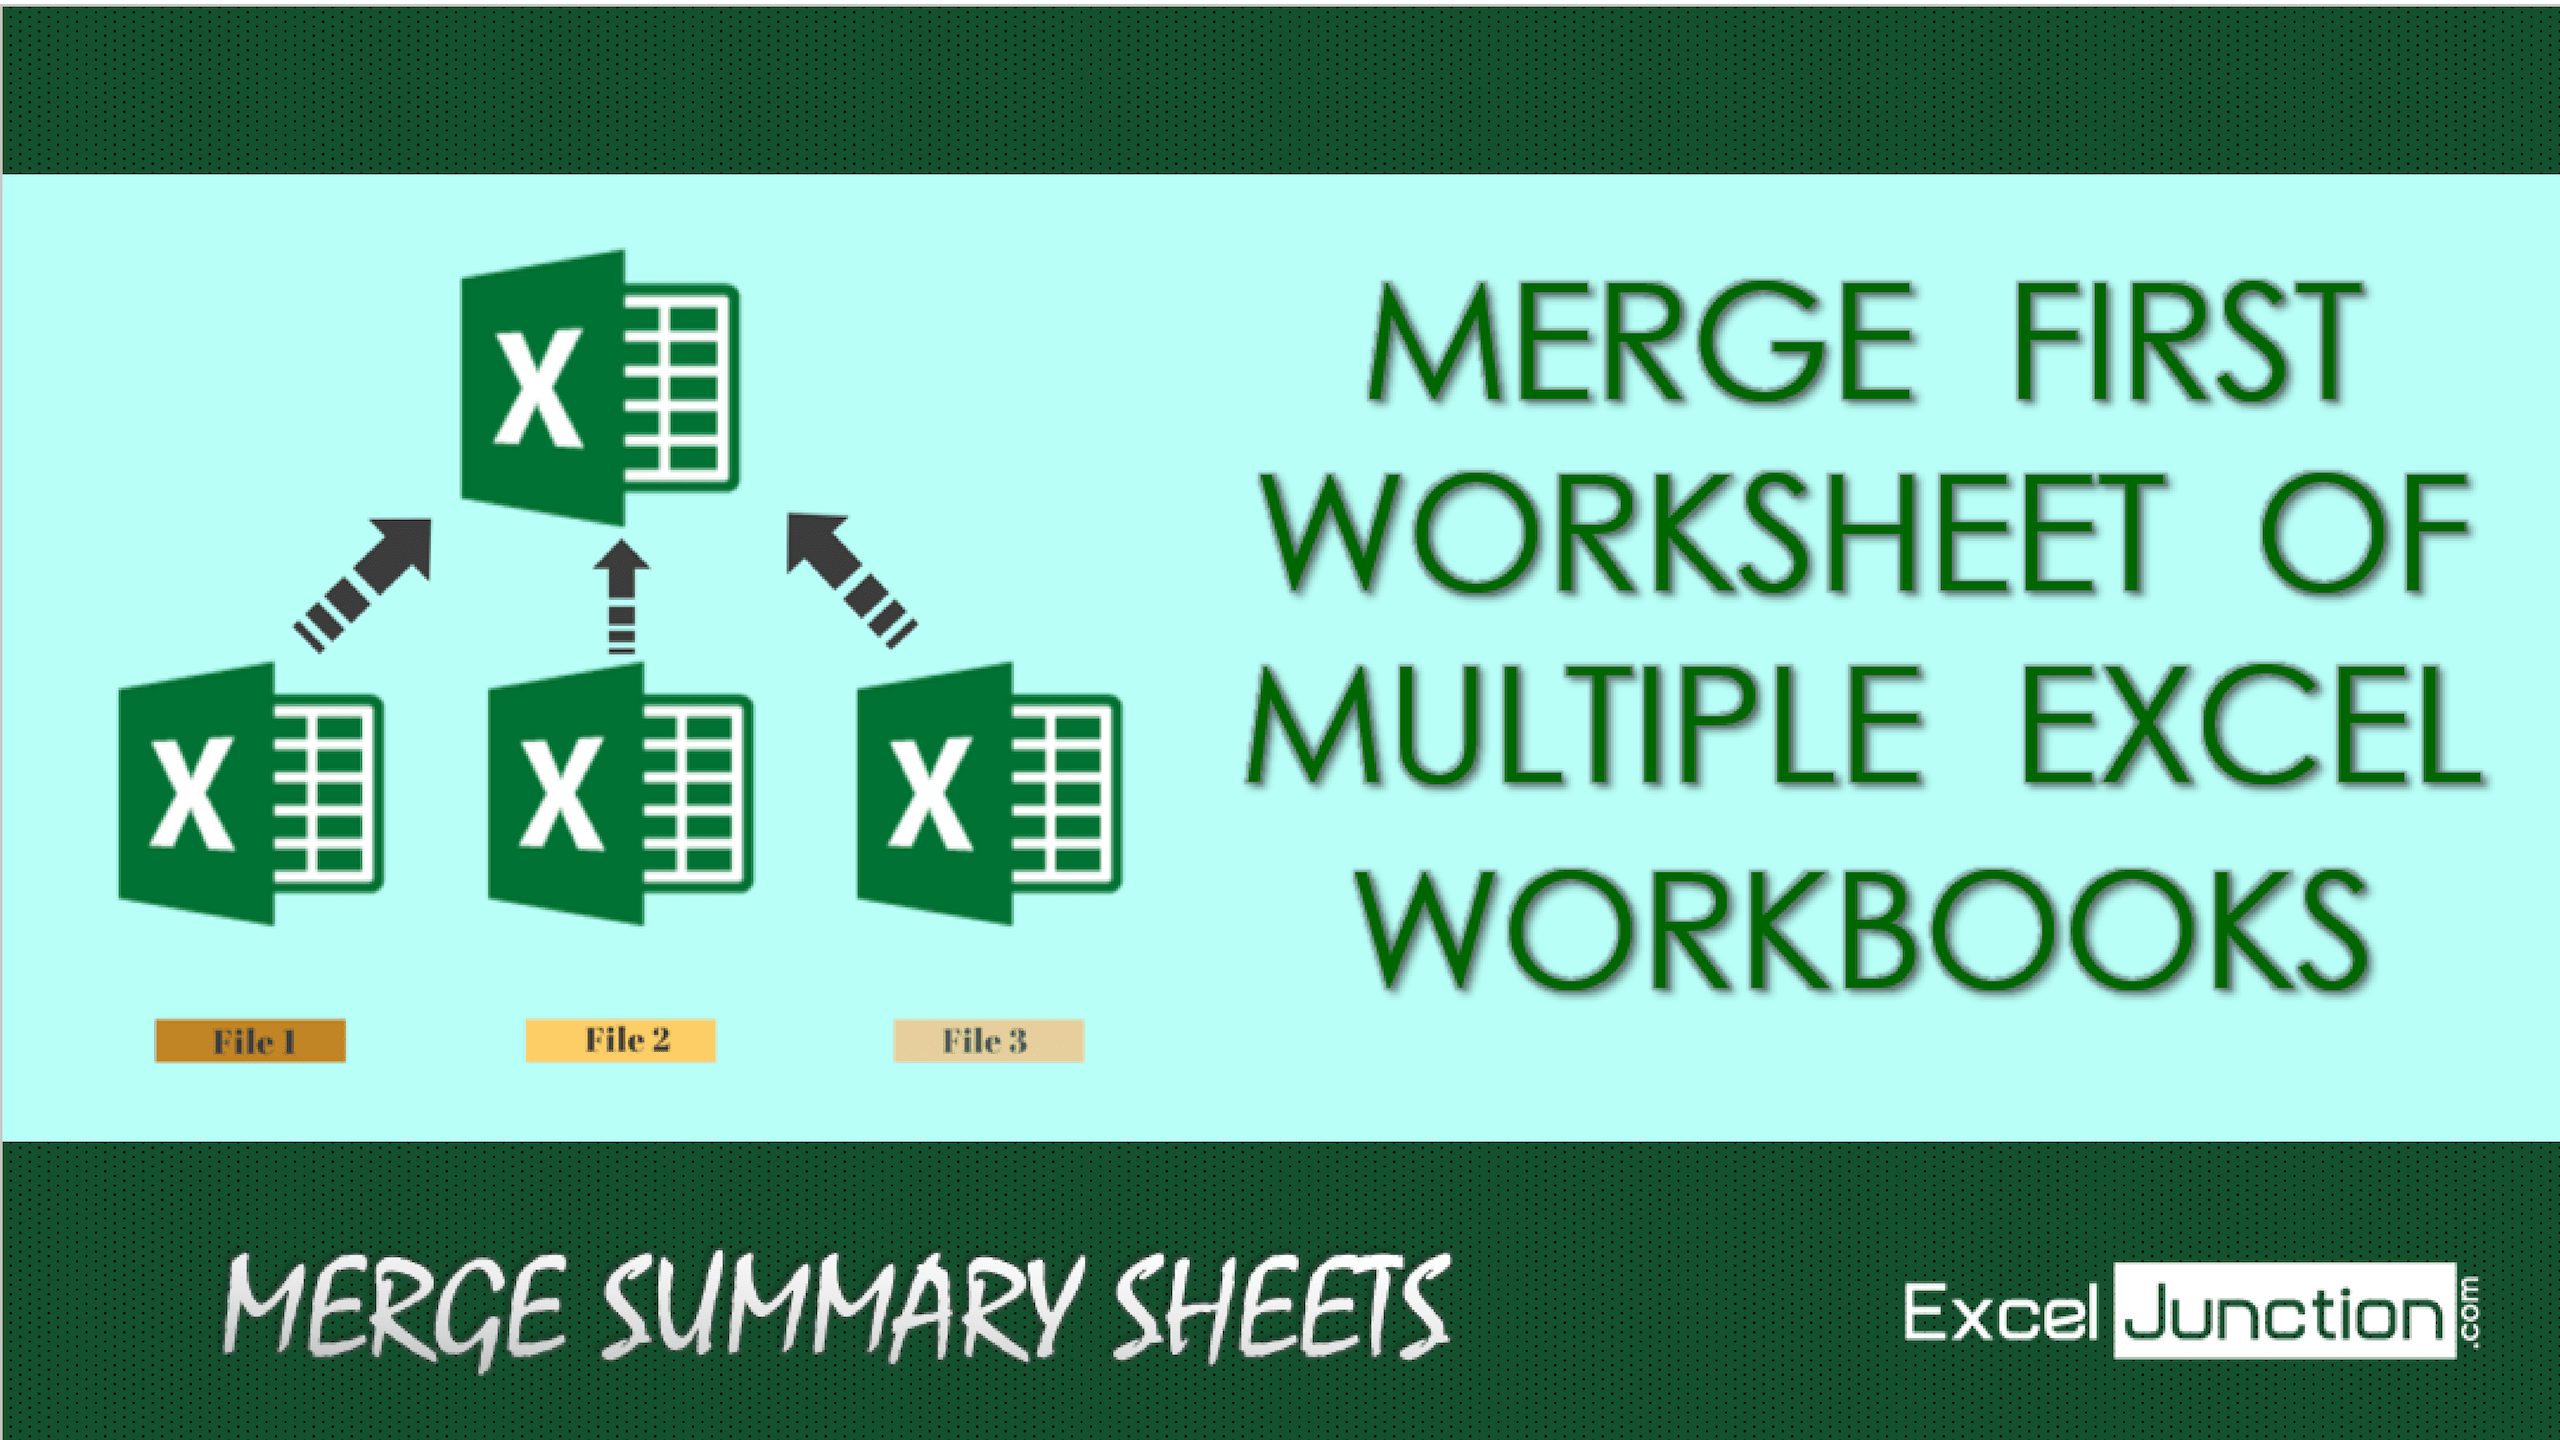 Merge First Worksheet